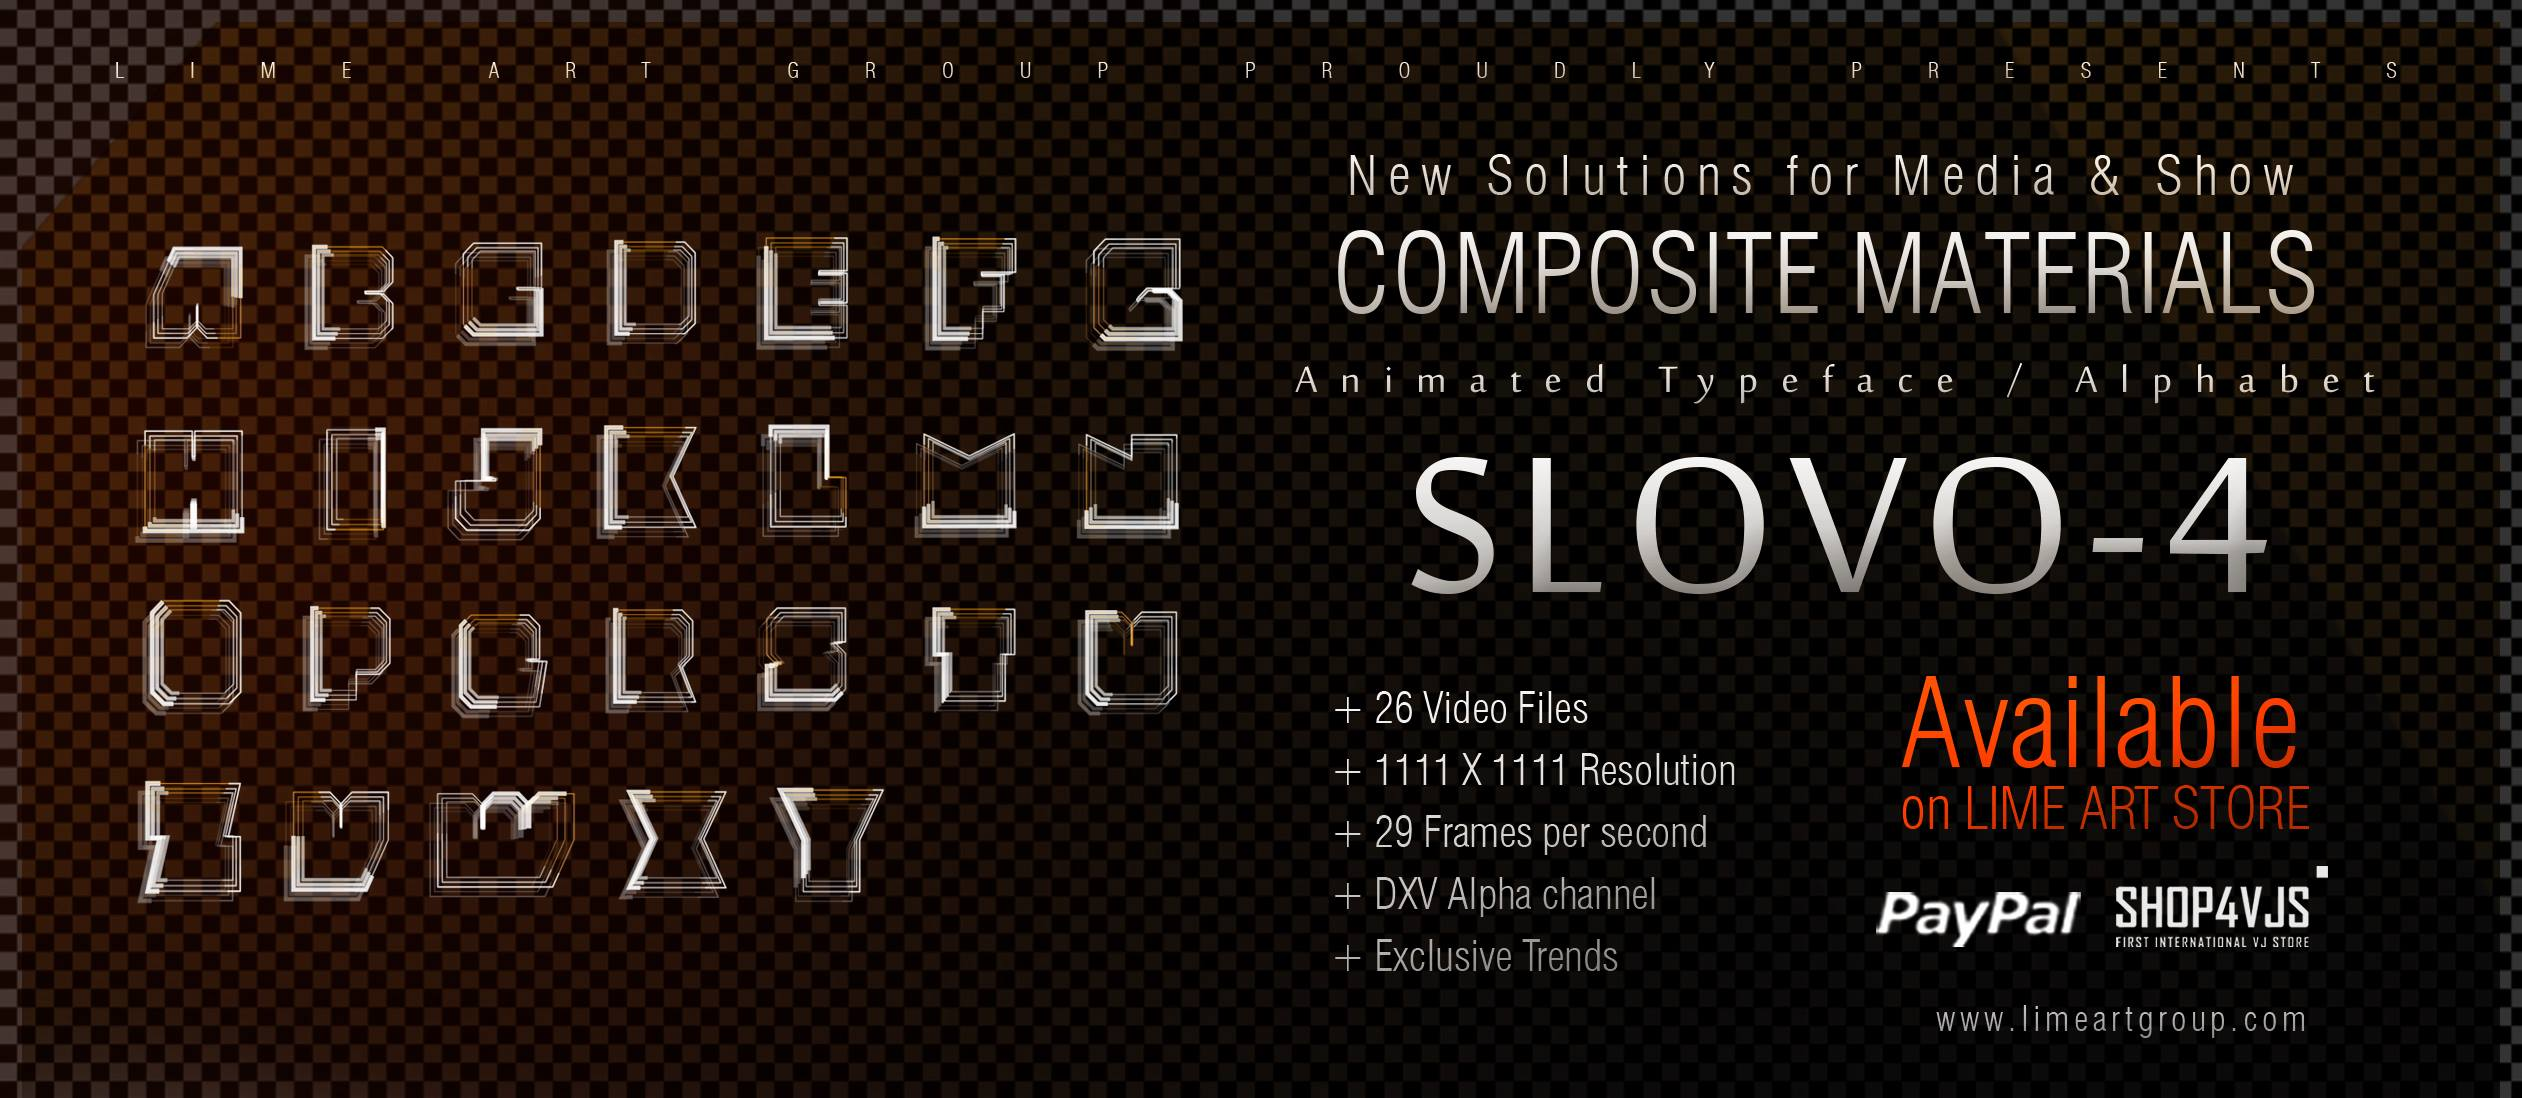 Animated typeface f4